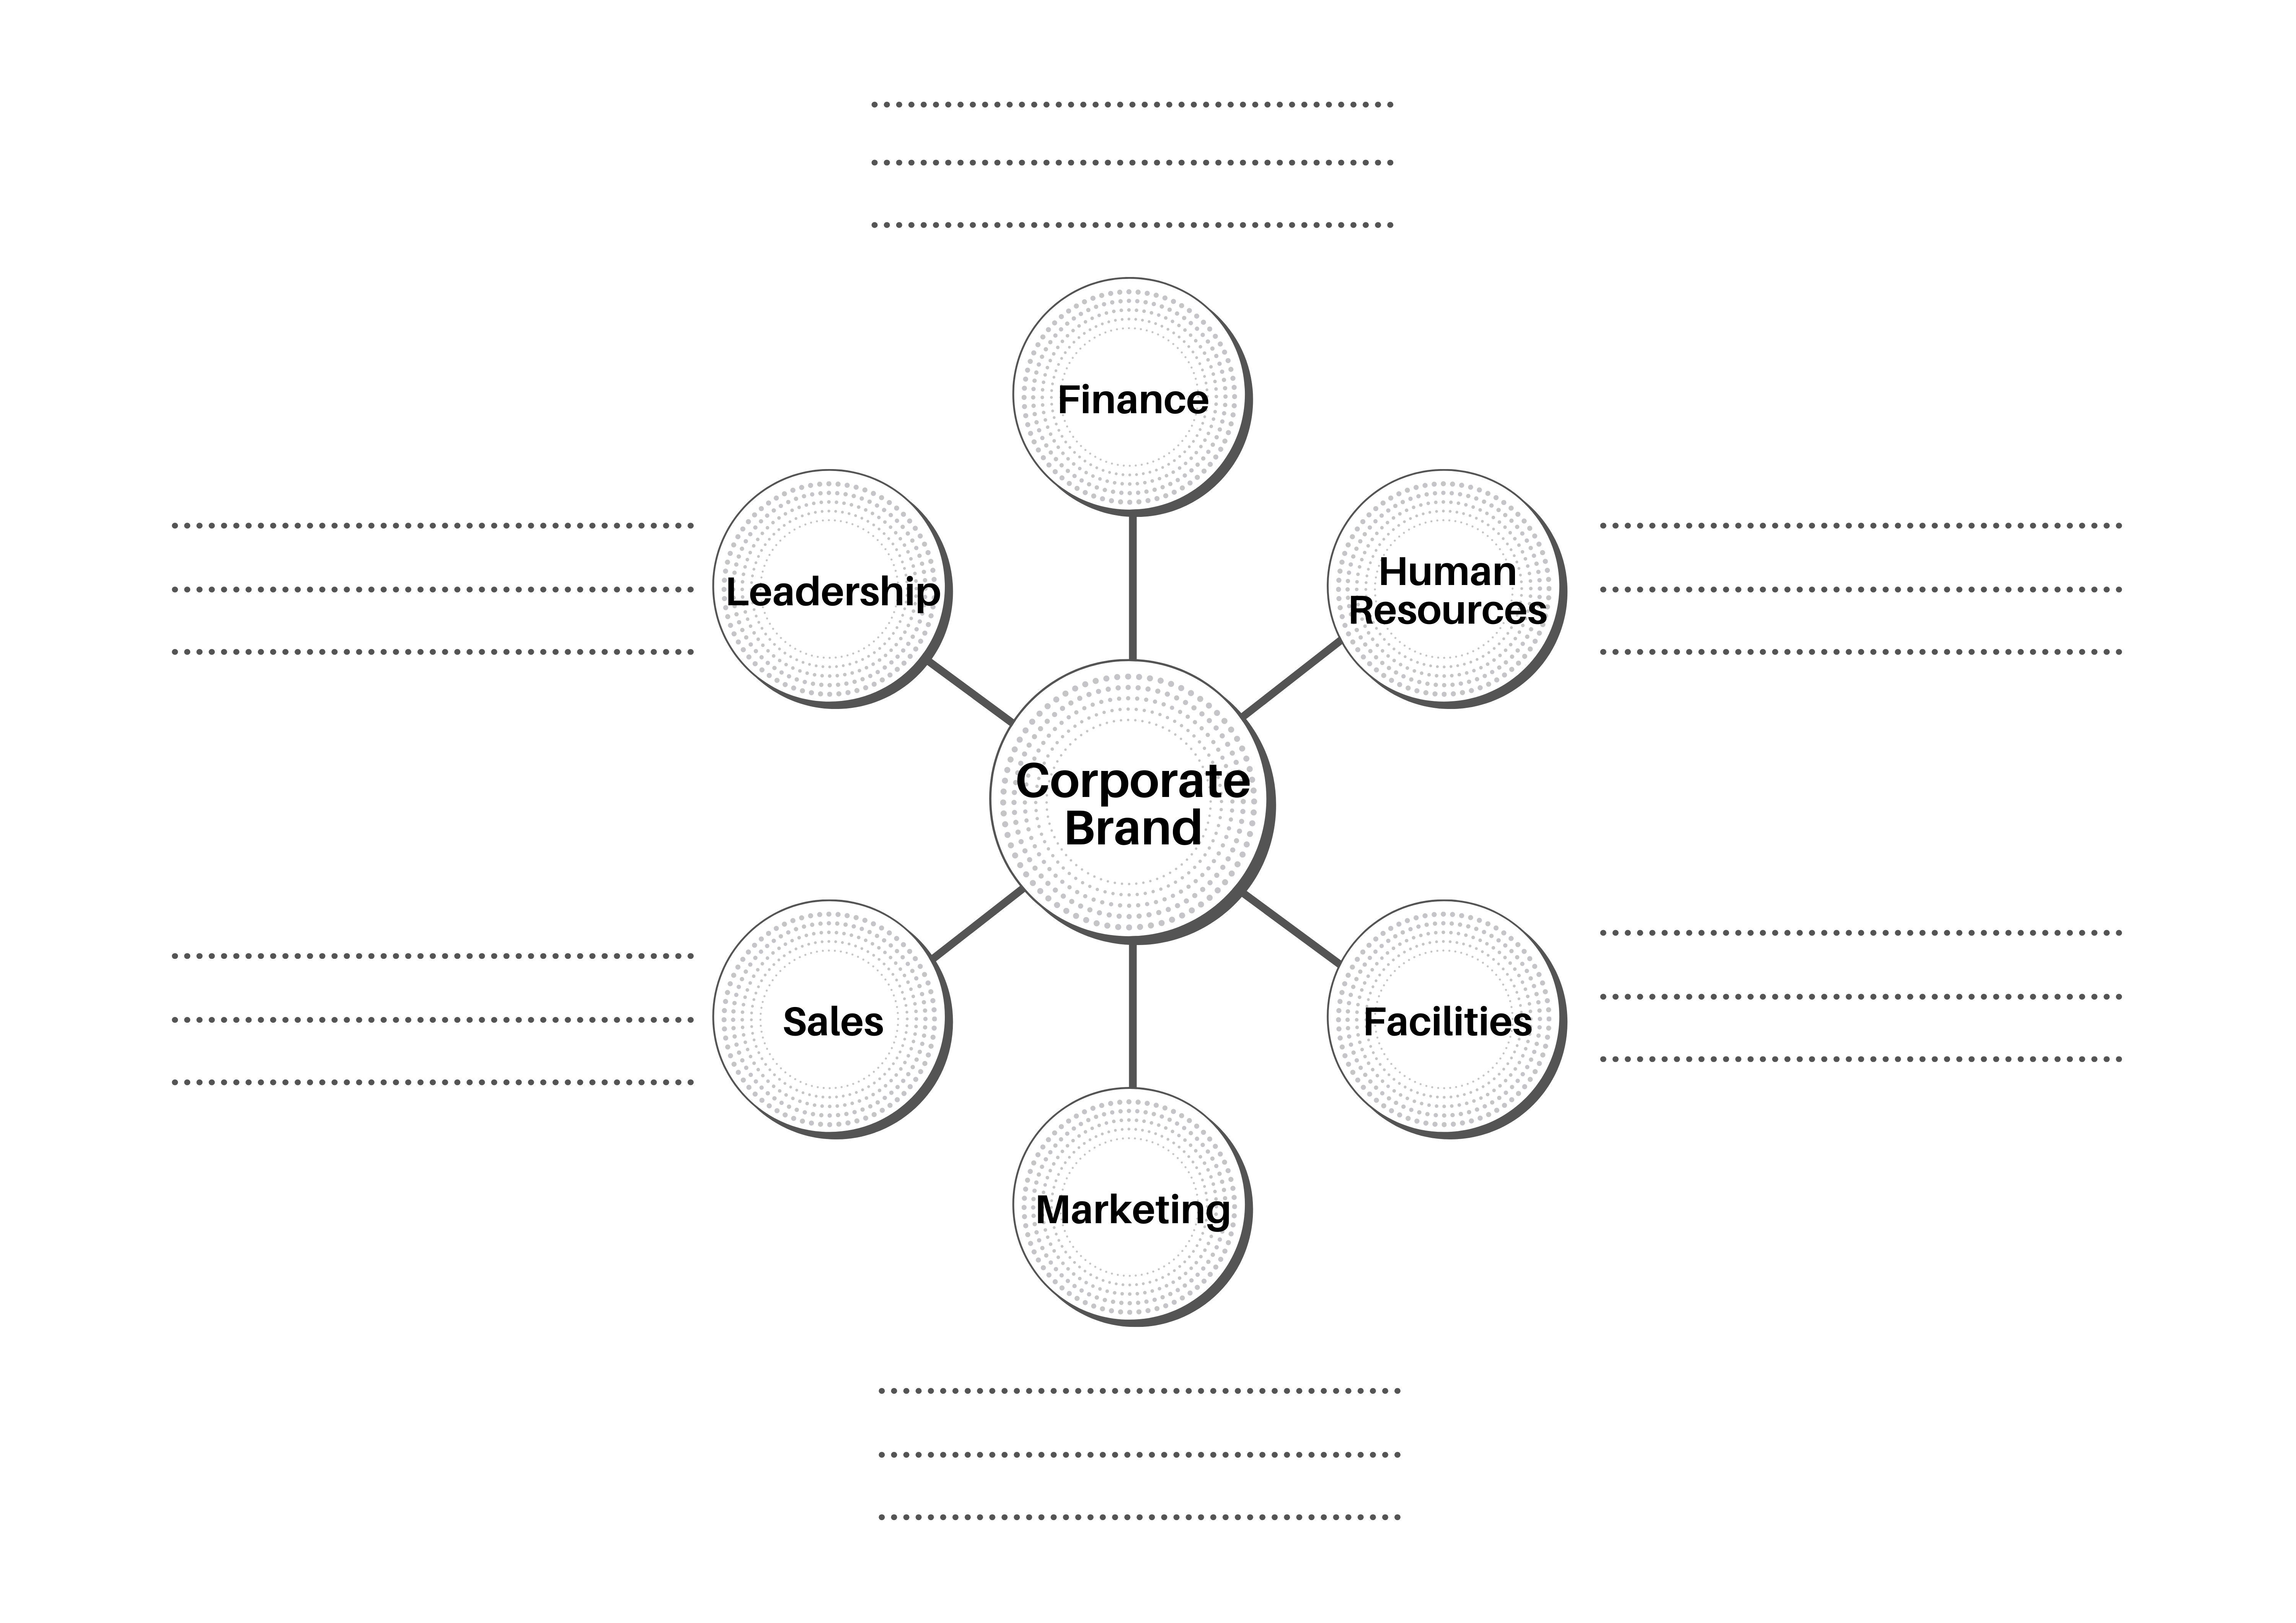 Brand blueprint for building the foundation of corporate culture